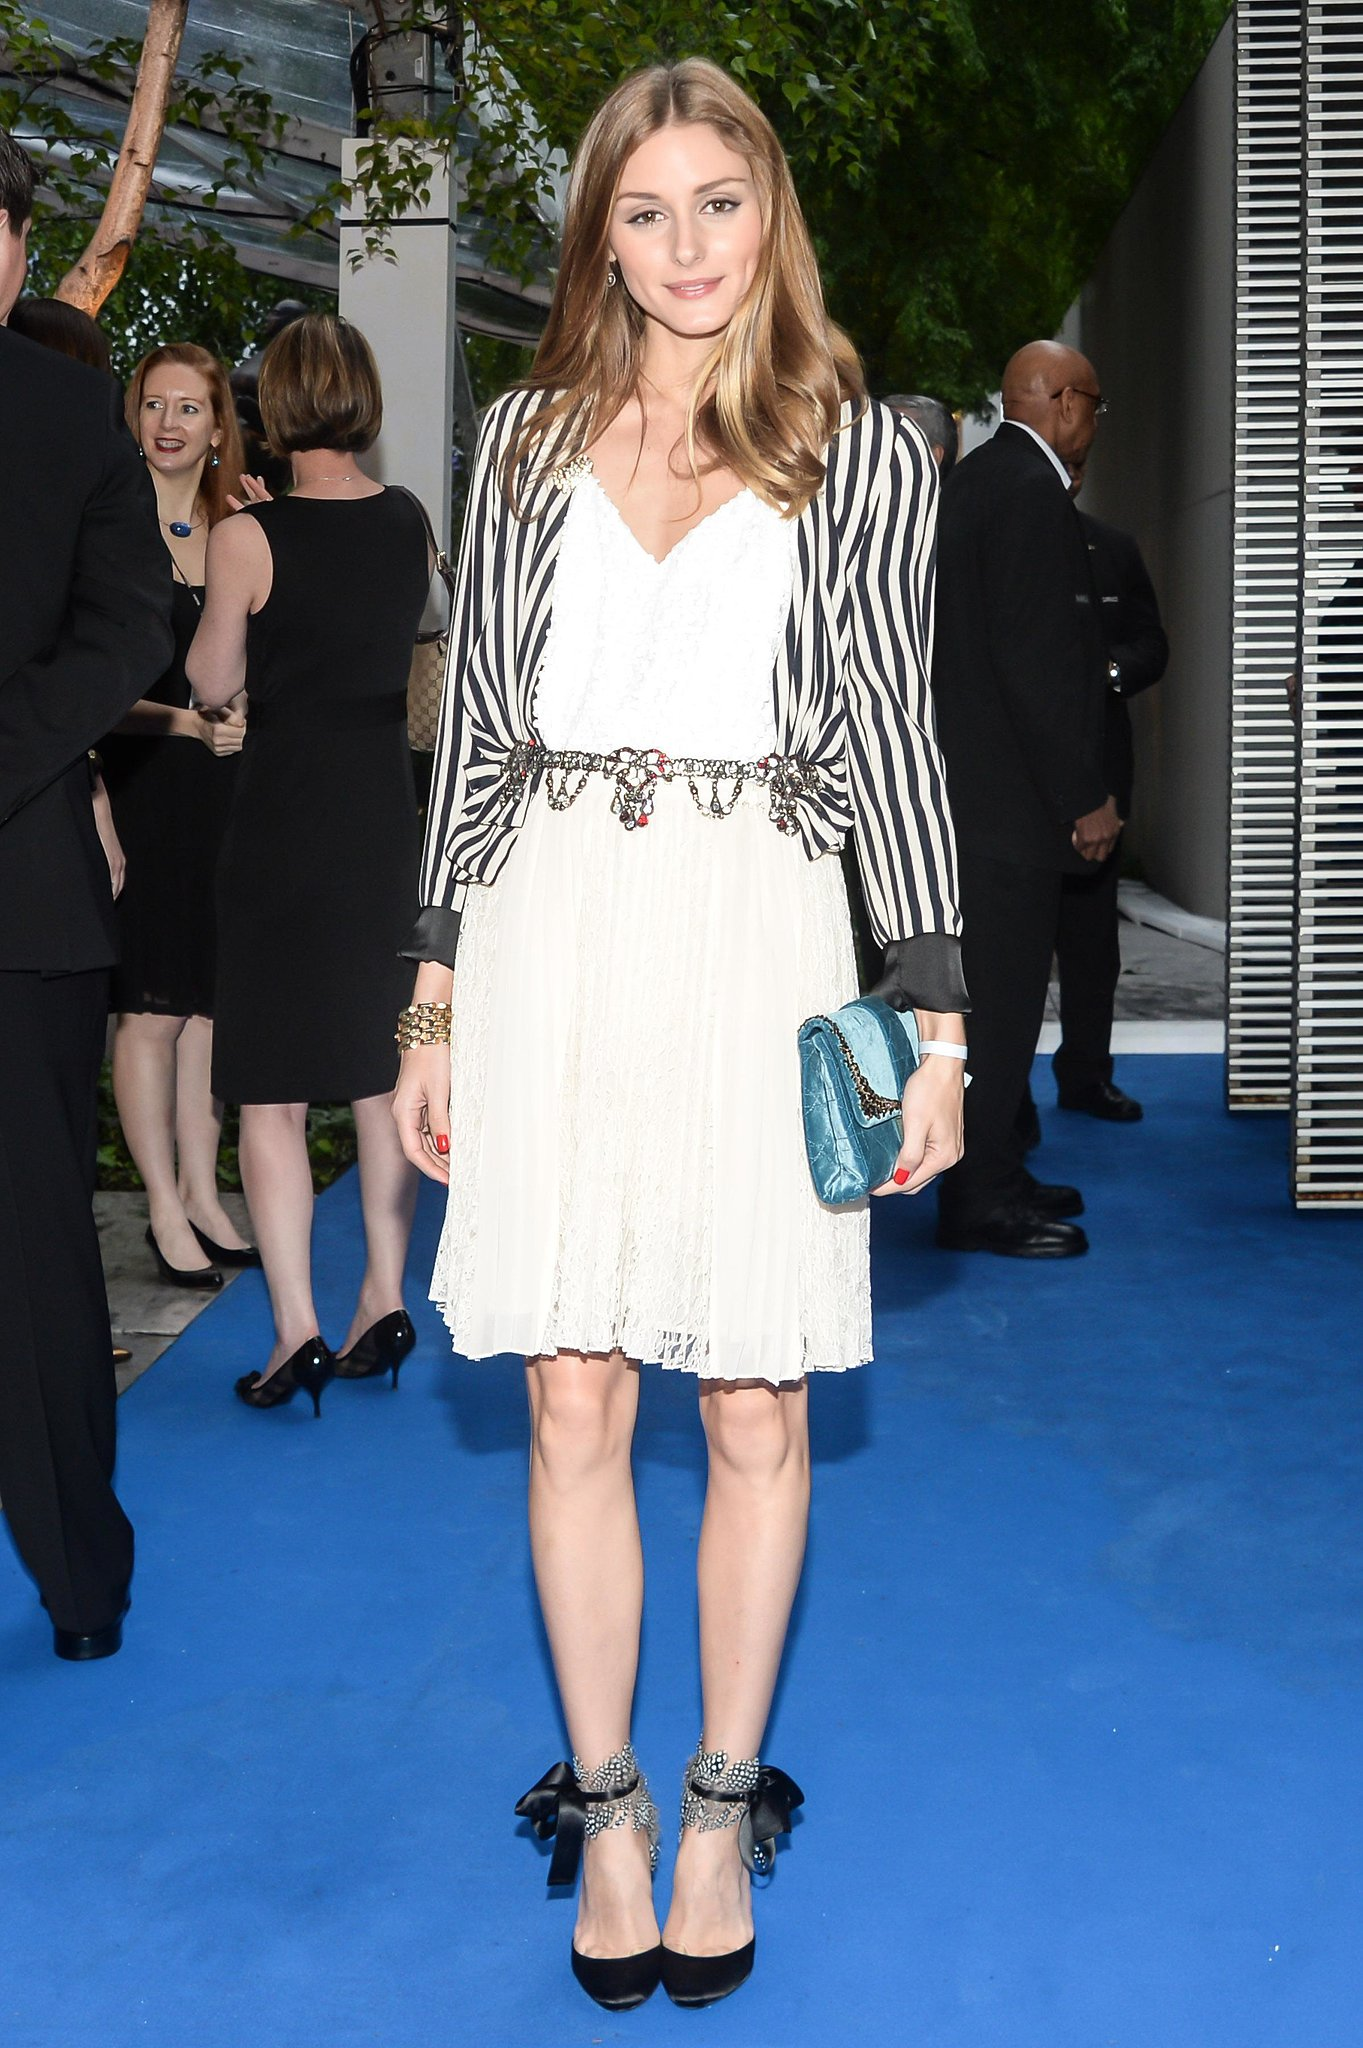 With a striped jacket, jeweled belt, and delicate ankle-strap heels, Olivia set her LWD apart from the rest of the cocktail party crowd at an event at the MoMA in May.